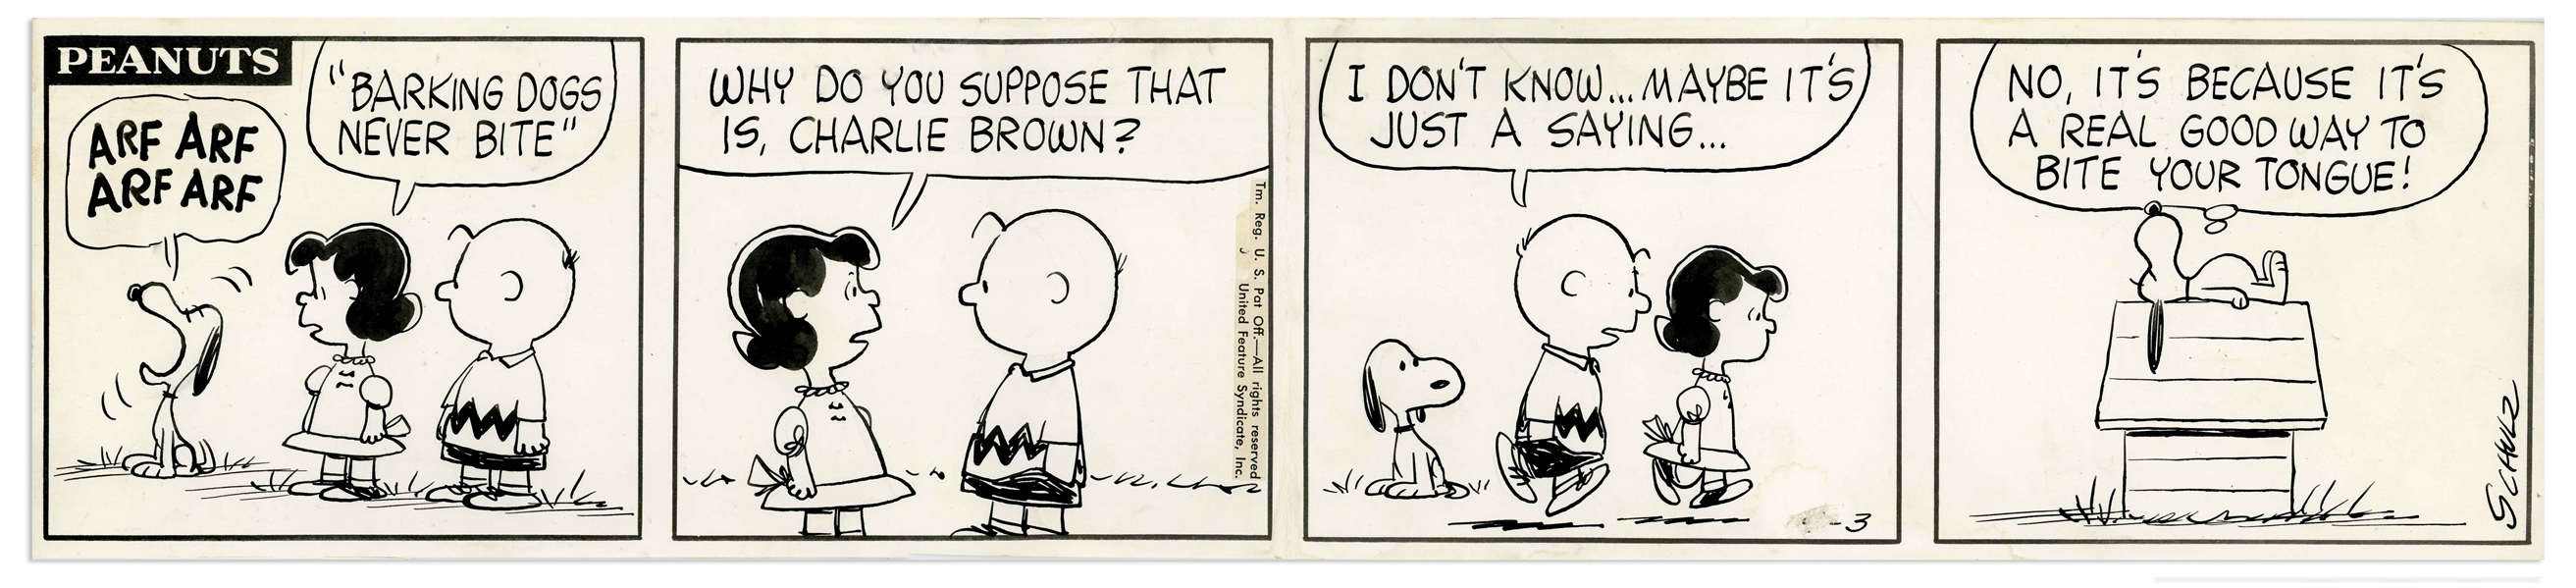 Original Charles Schulz Hand-Drawn ''Peanuts'' Comic Strip From 1960 Featuring Charlie Brown, Snoopy & Lucy -- ''Barking Dogs Never Bite''